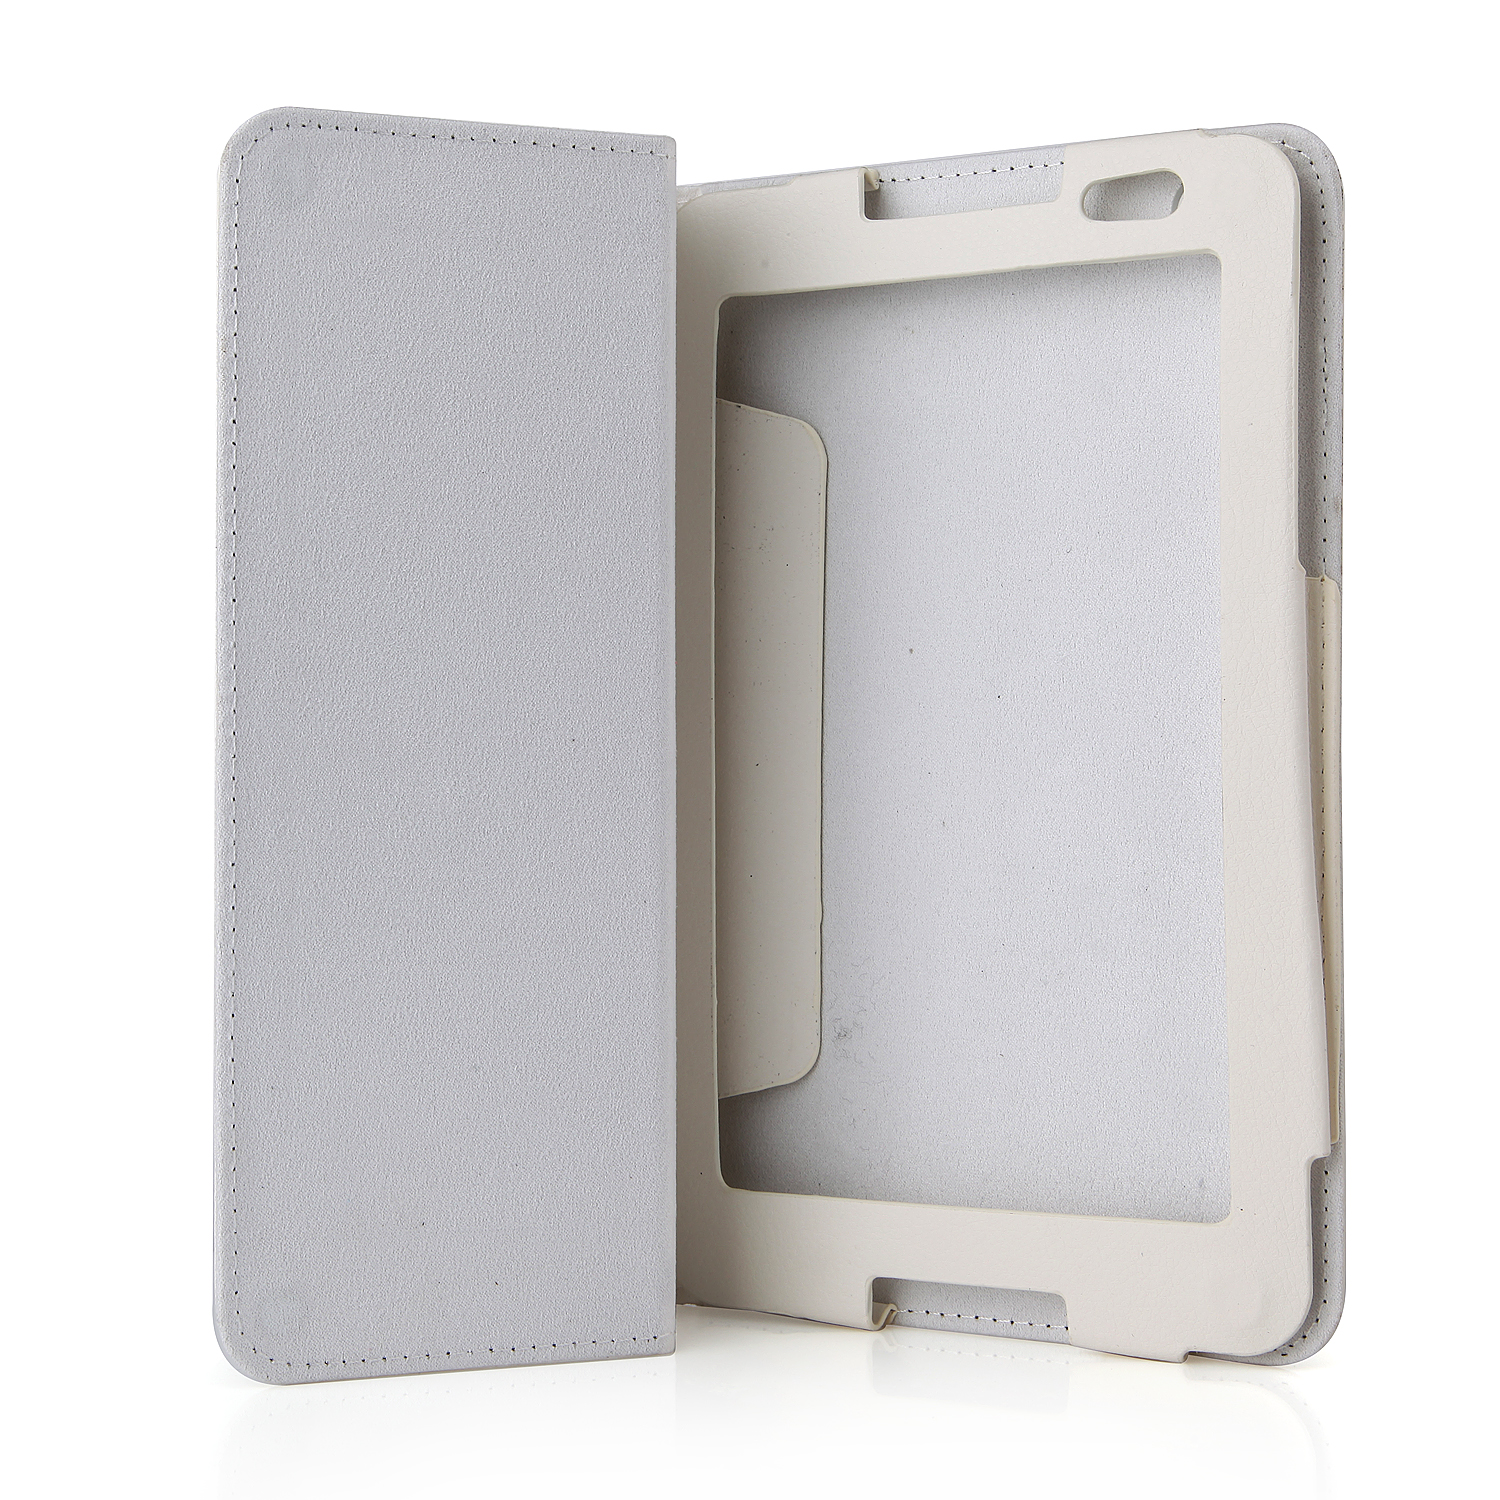 Protective PU Leather Stand Case Cover for Lenovo A5500 Tablet PC White